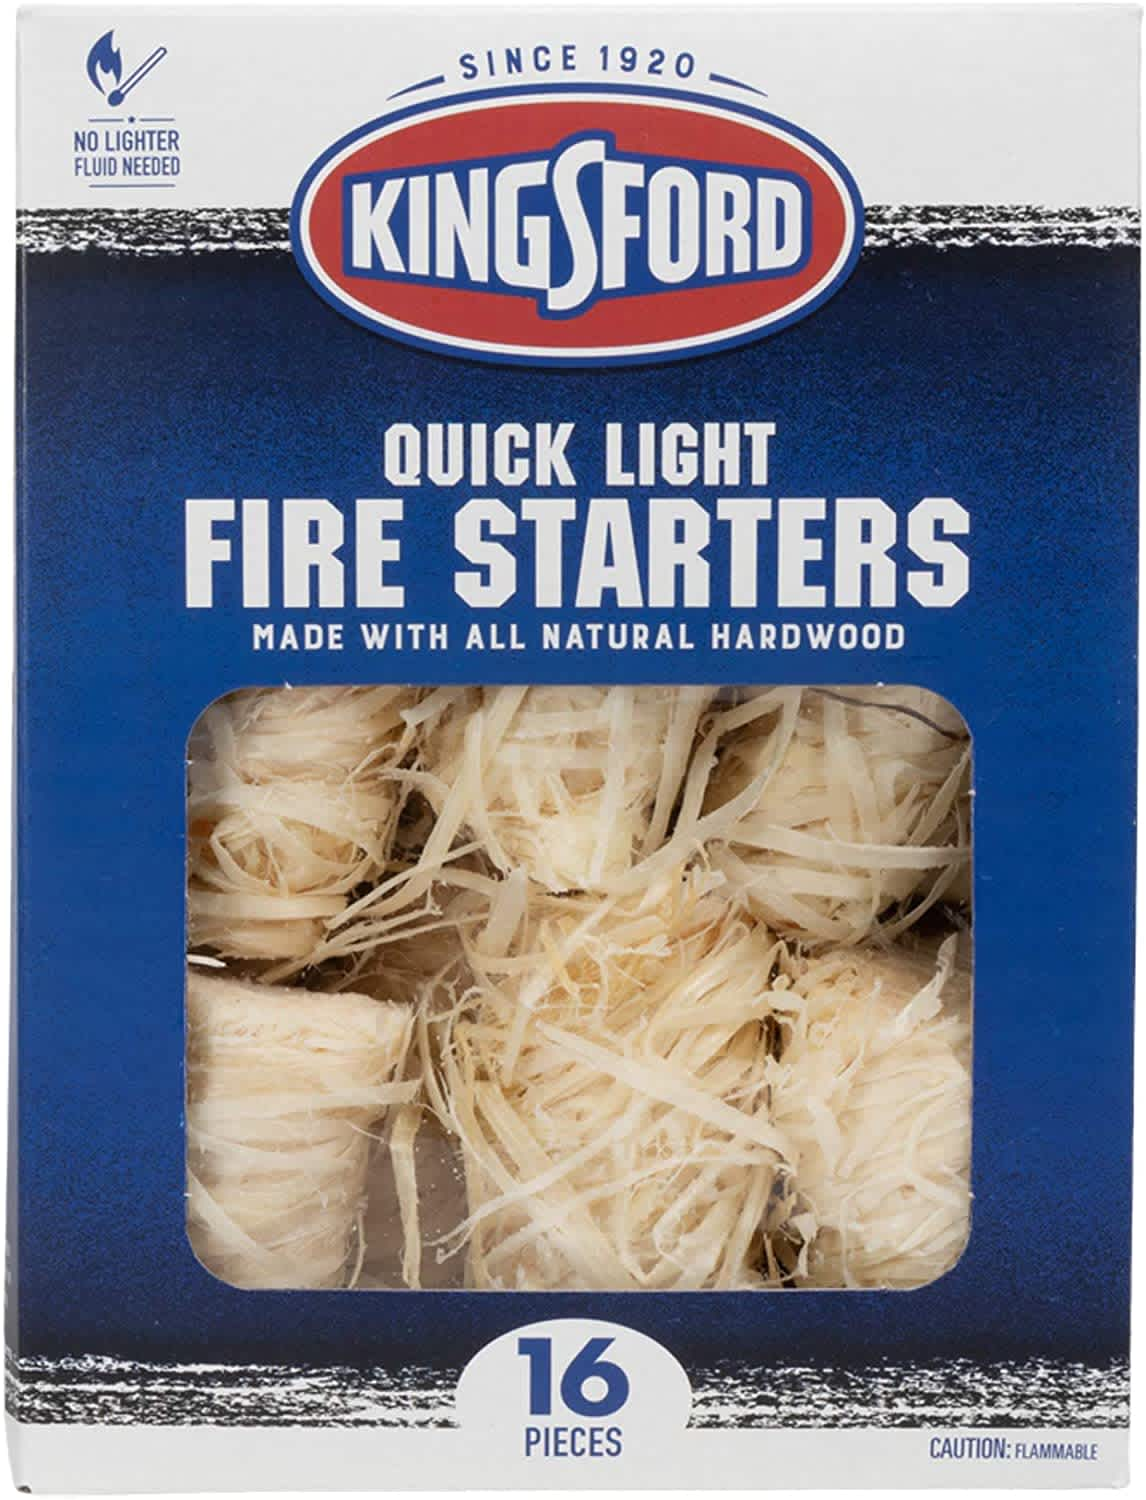 Kingsford 16-Piece Quick Light Fire Starters